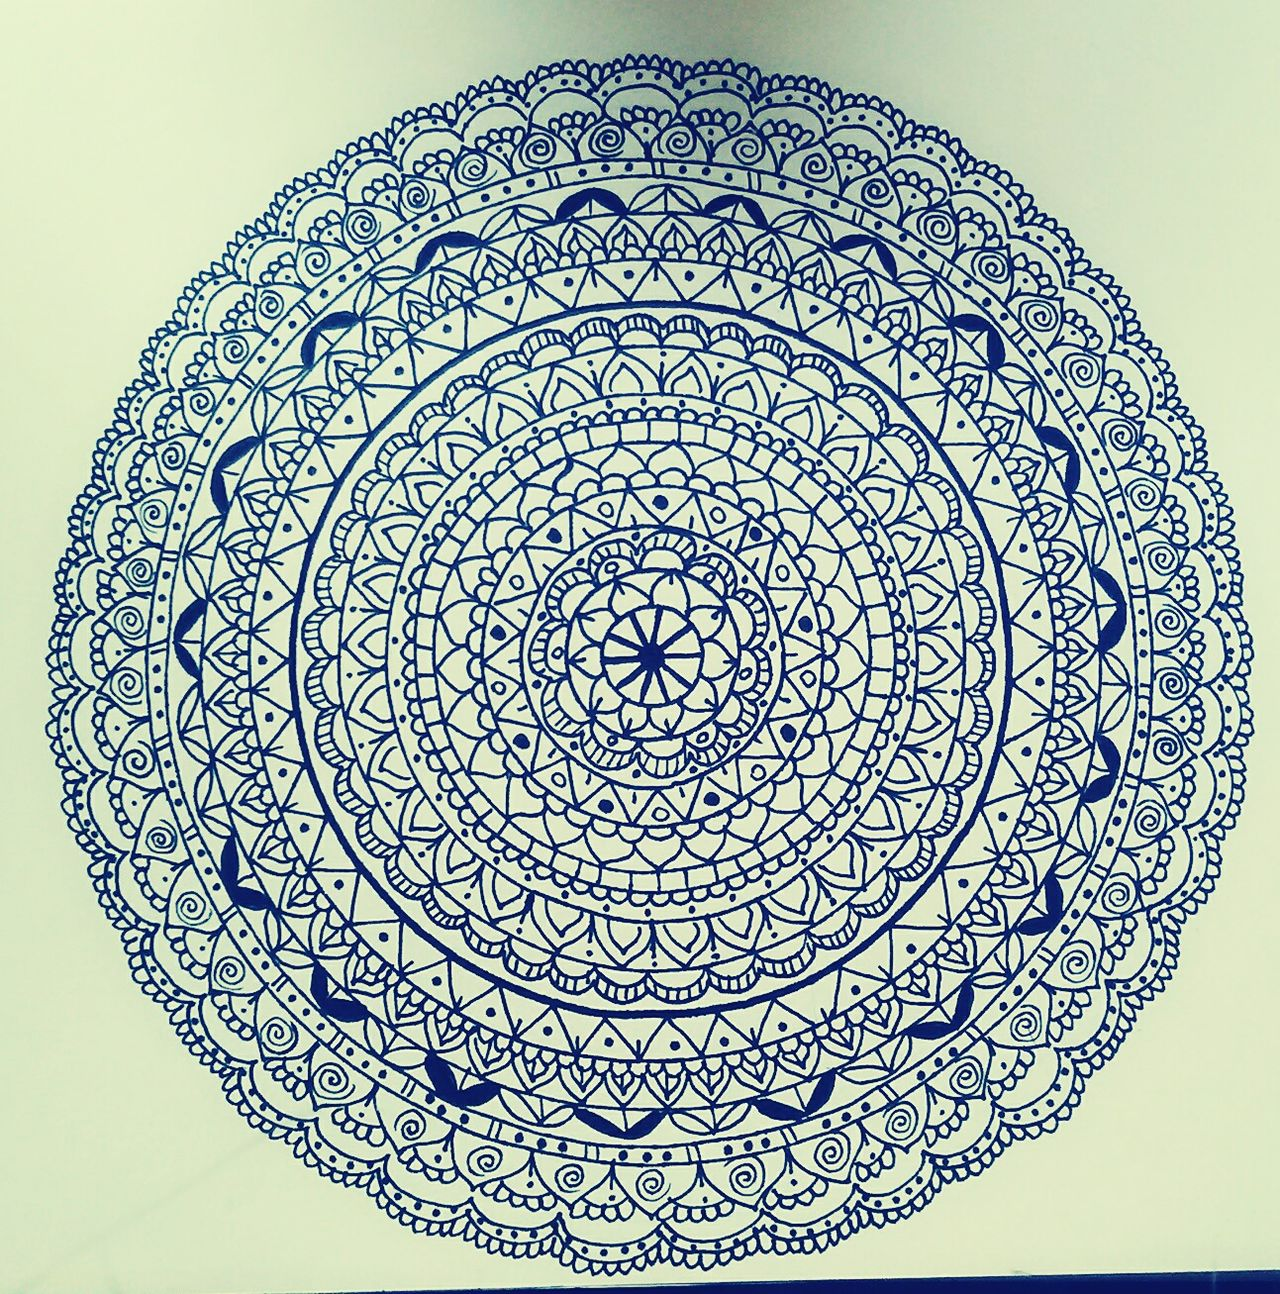 Mandala Mandalas Mandalasart Mandalas❤ Zentangle Zentagle Zentangles Zentangleart Zentangle Art Drawing Drawings